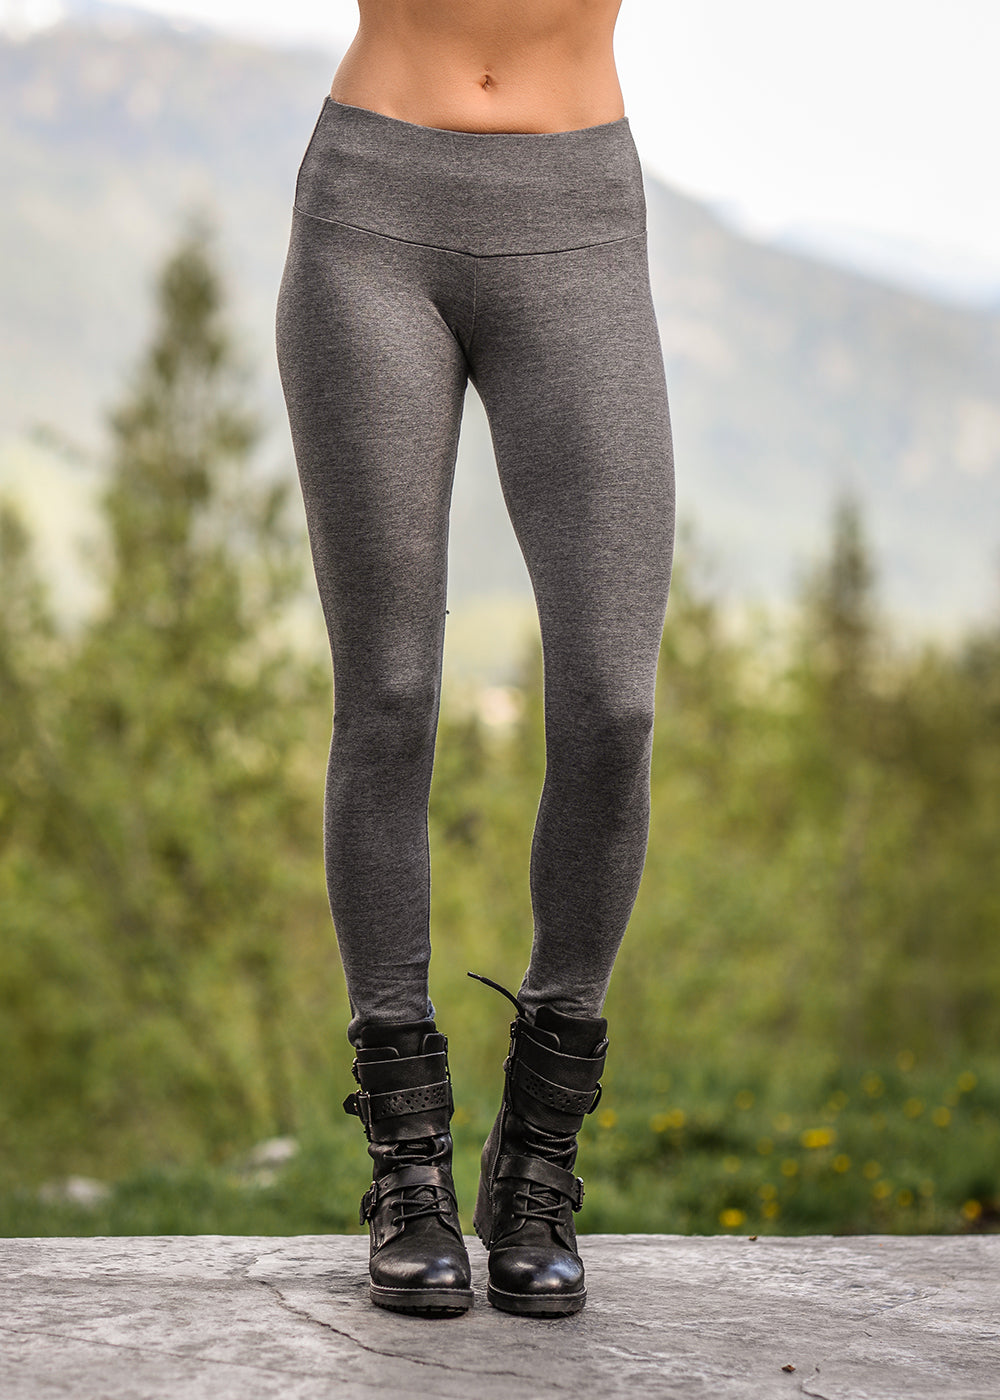 NOM Spectrum leggings